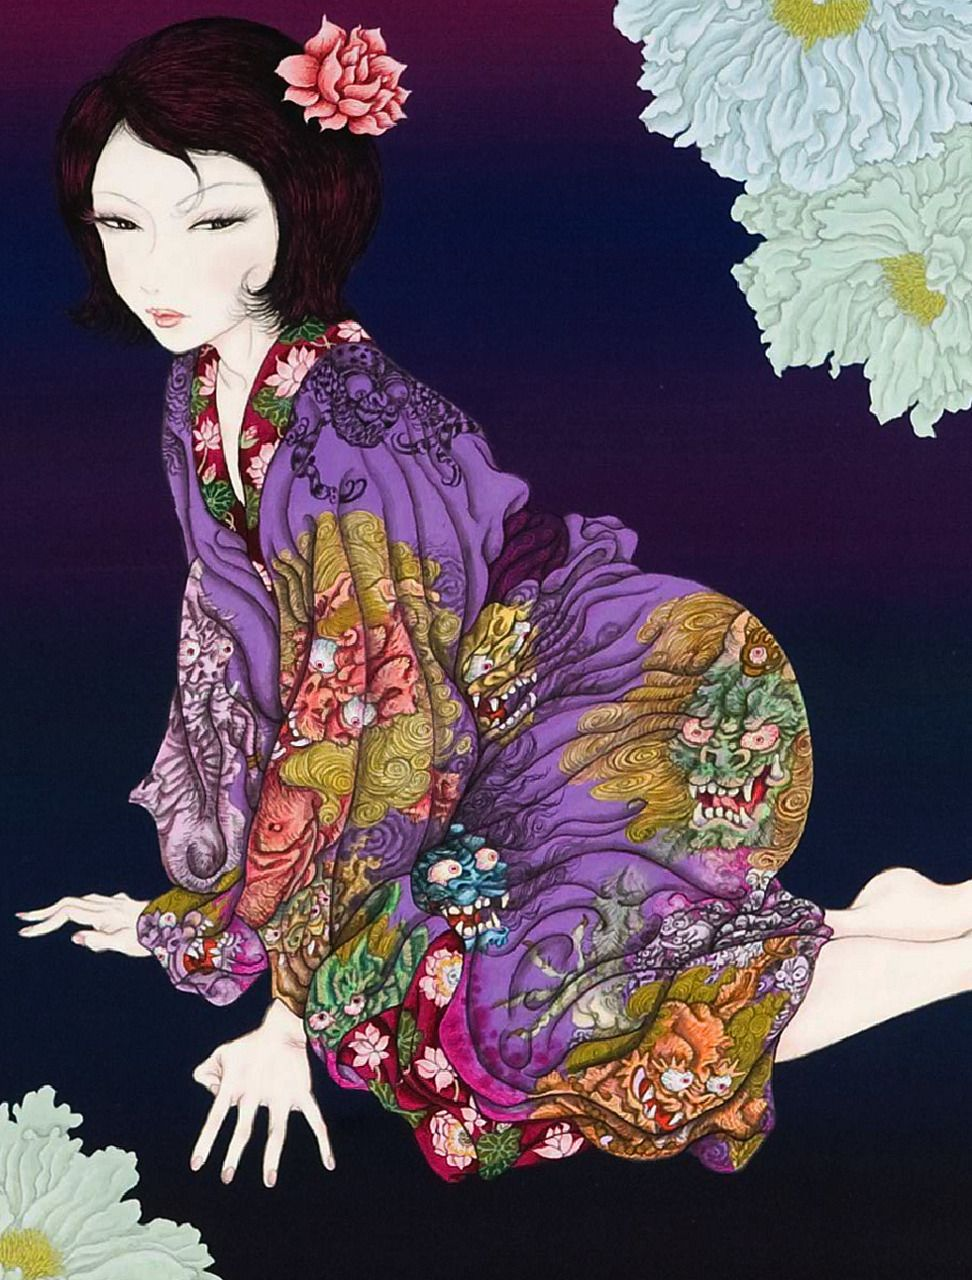 The Leaning Forward Pose And The Flowers In The Corner In 2020 Japanese Artwork Illustration Art Japan Art